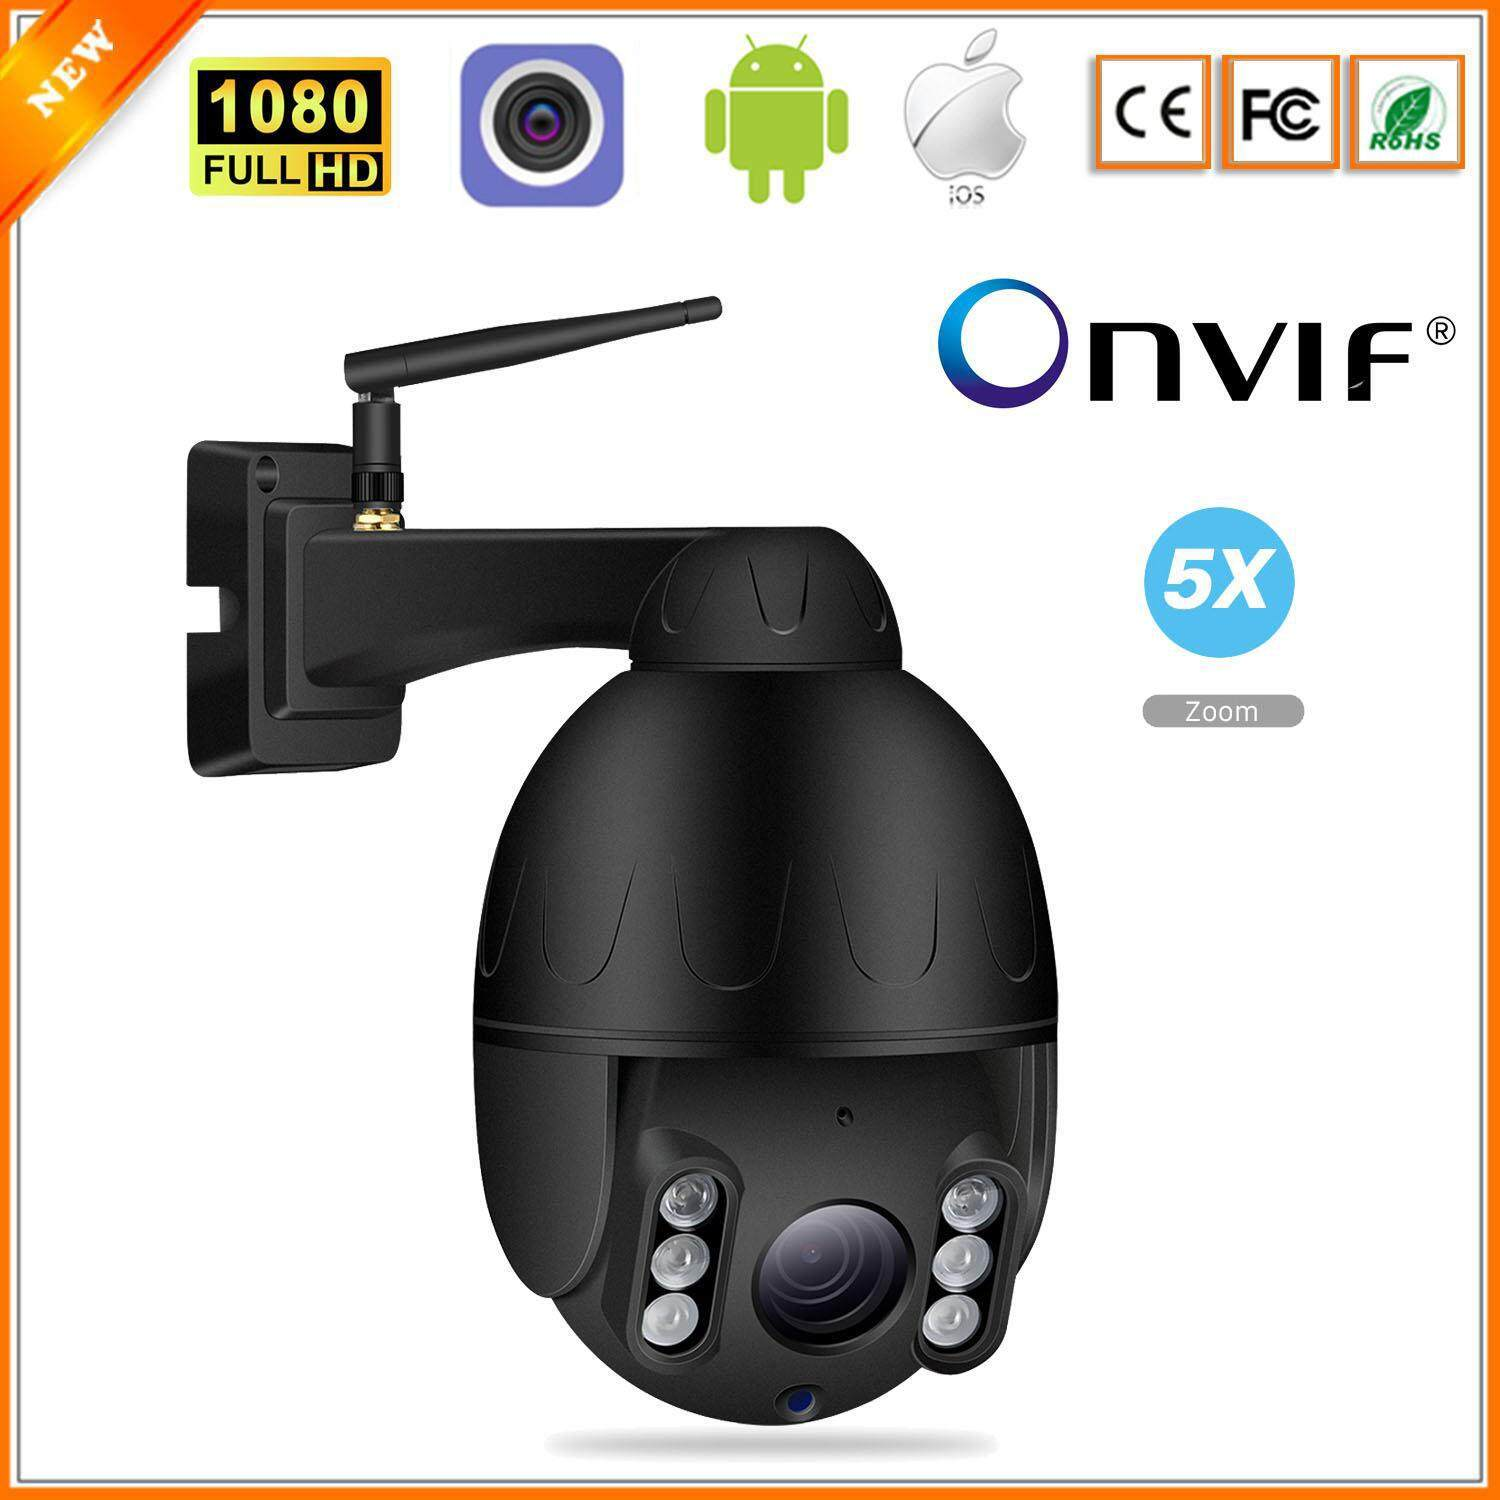 Besder 1080p Ptz Wifi Camera Outdoor 2mp 5x Optical Zoom 2.7-13.5mm Lens Speed Dome Ptz Ip Camera 1080p Cctv Security Wireless Camera Camhi App By Besder Official Store.